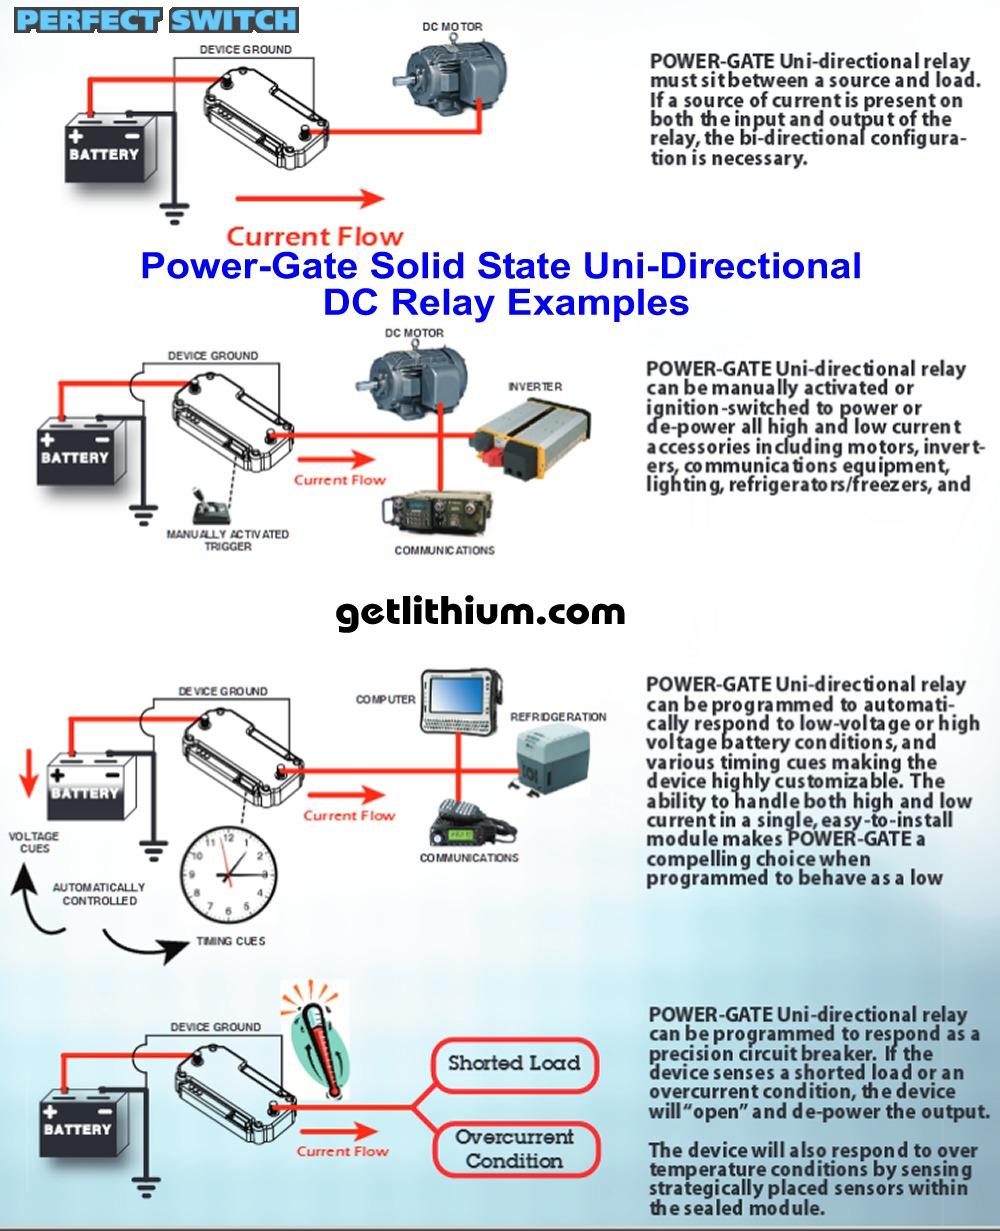 Perfect Switch Power Gate Solid State Mosfet Battery Uni Directional Relays A Relay Is An Electrically Operated Current Flowing Dc Applications